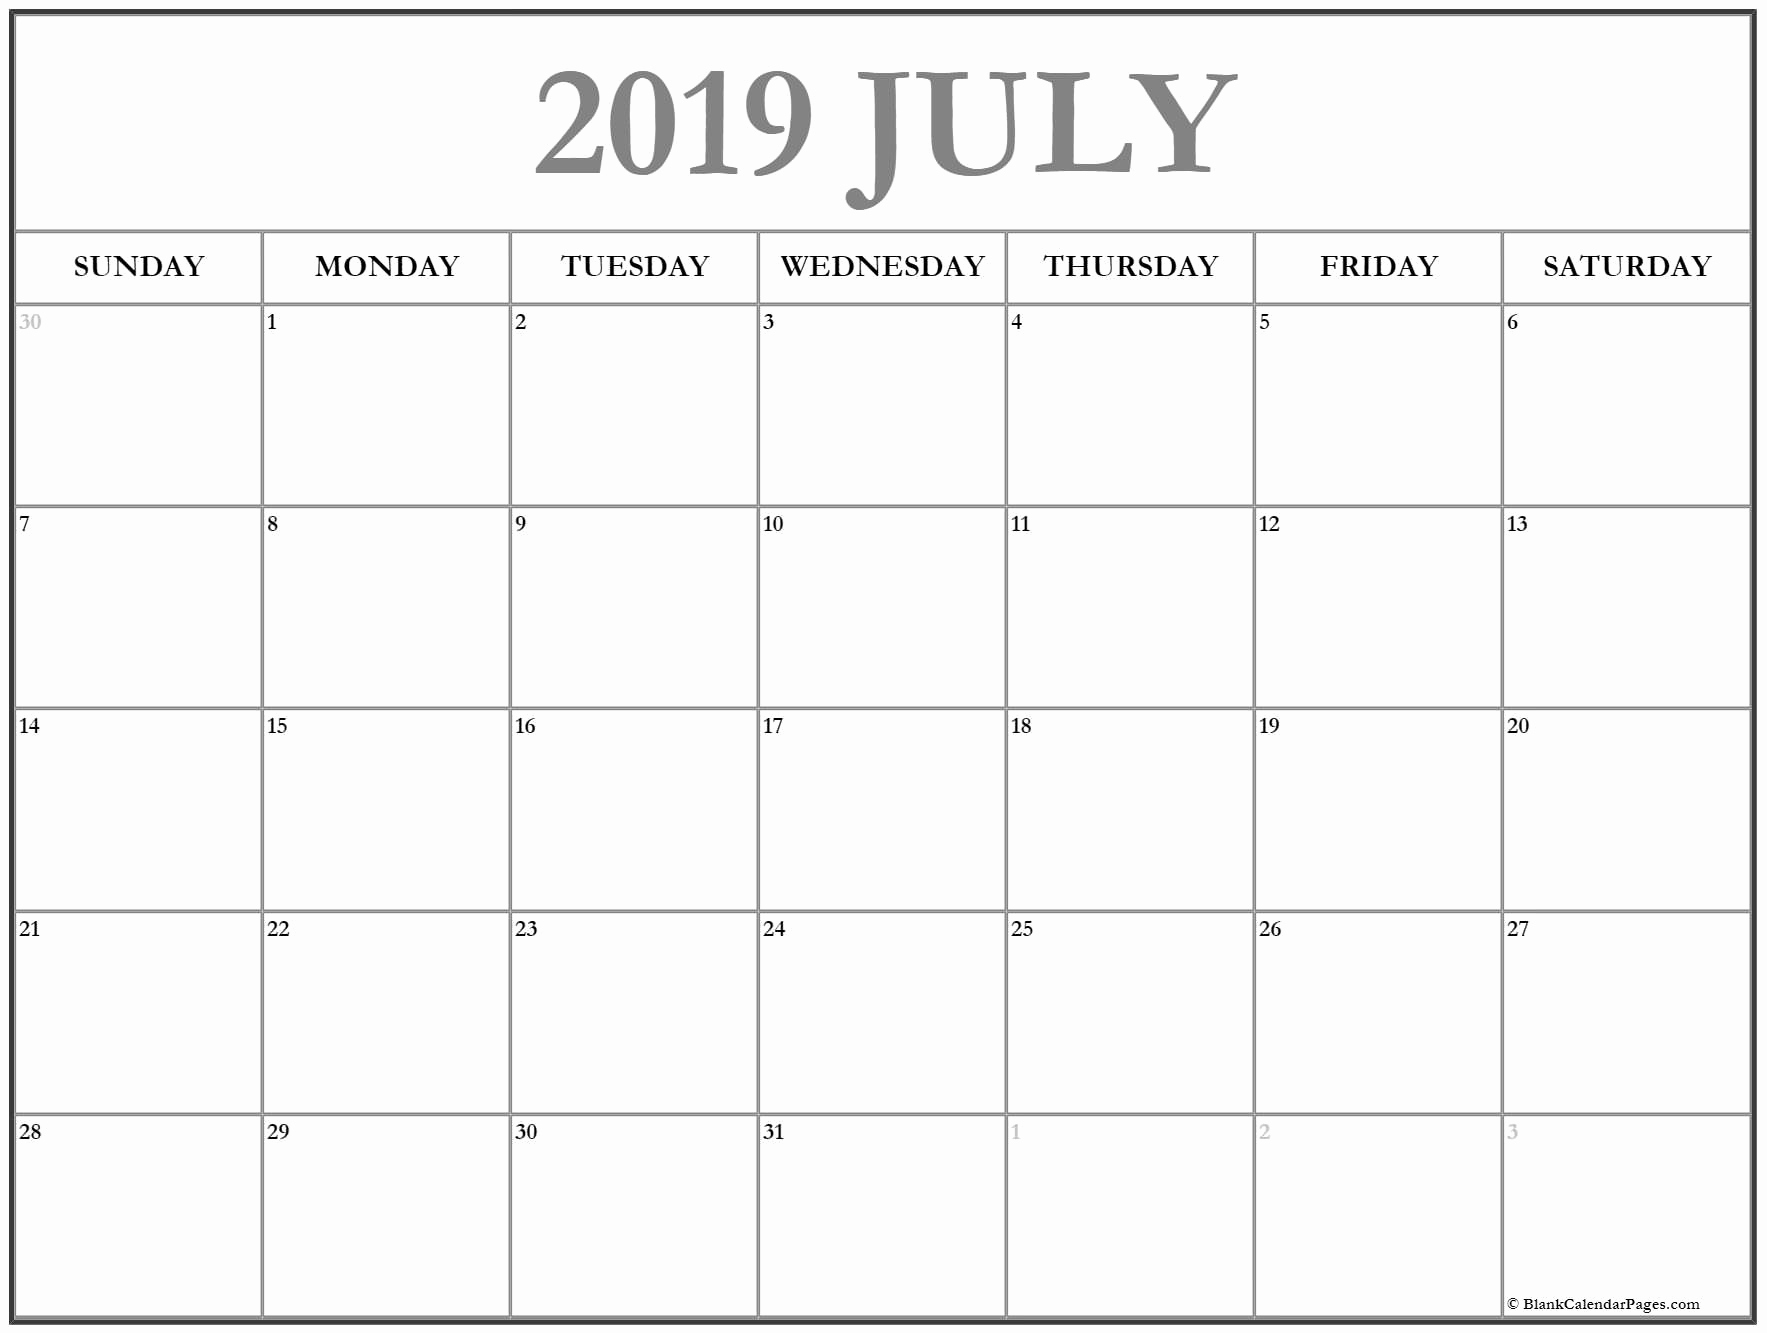 Monthly Blank Calendar Template July 2019 - Free Printable Calendar pertaining to Blank Calendar Template For August